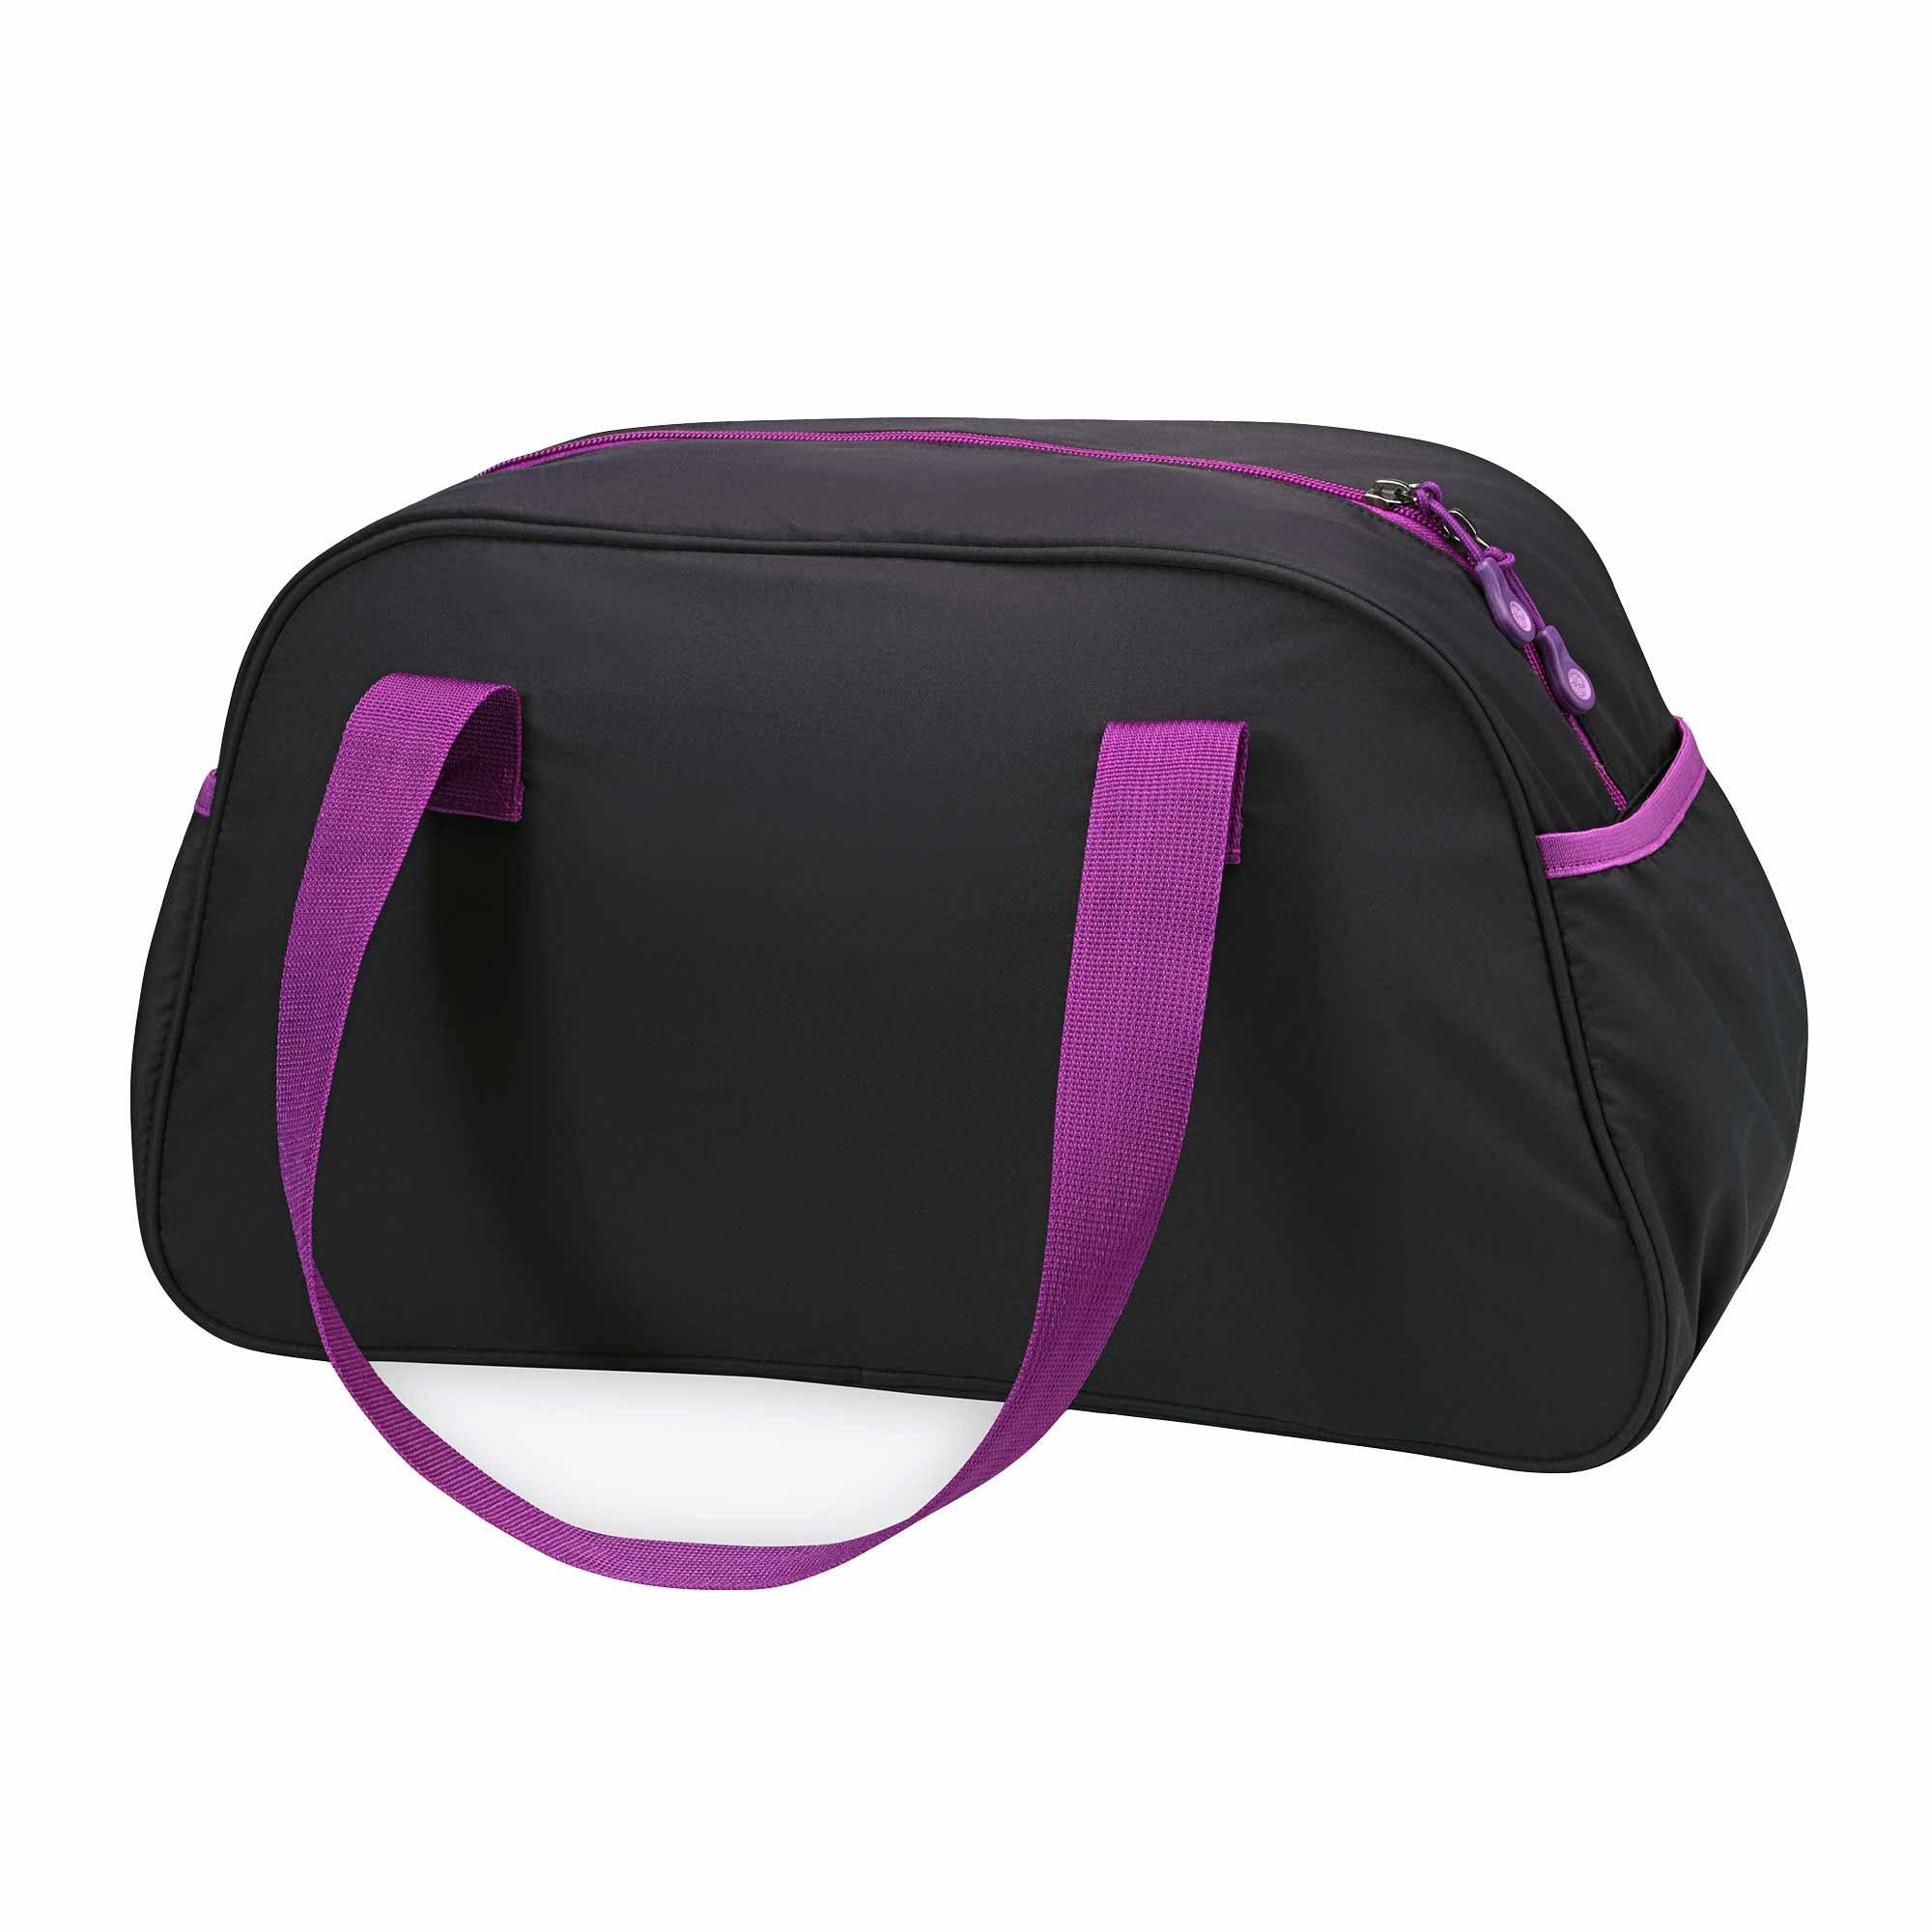 Amazon.com : Gaiam Duffle Yoga Mat Bag, Black/Grey